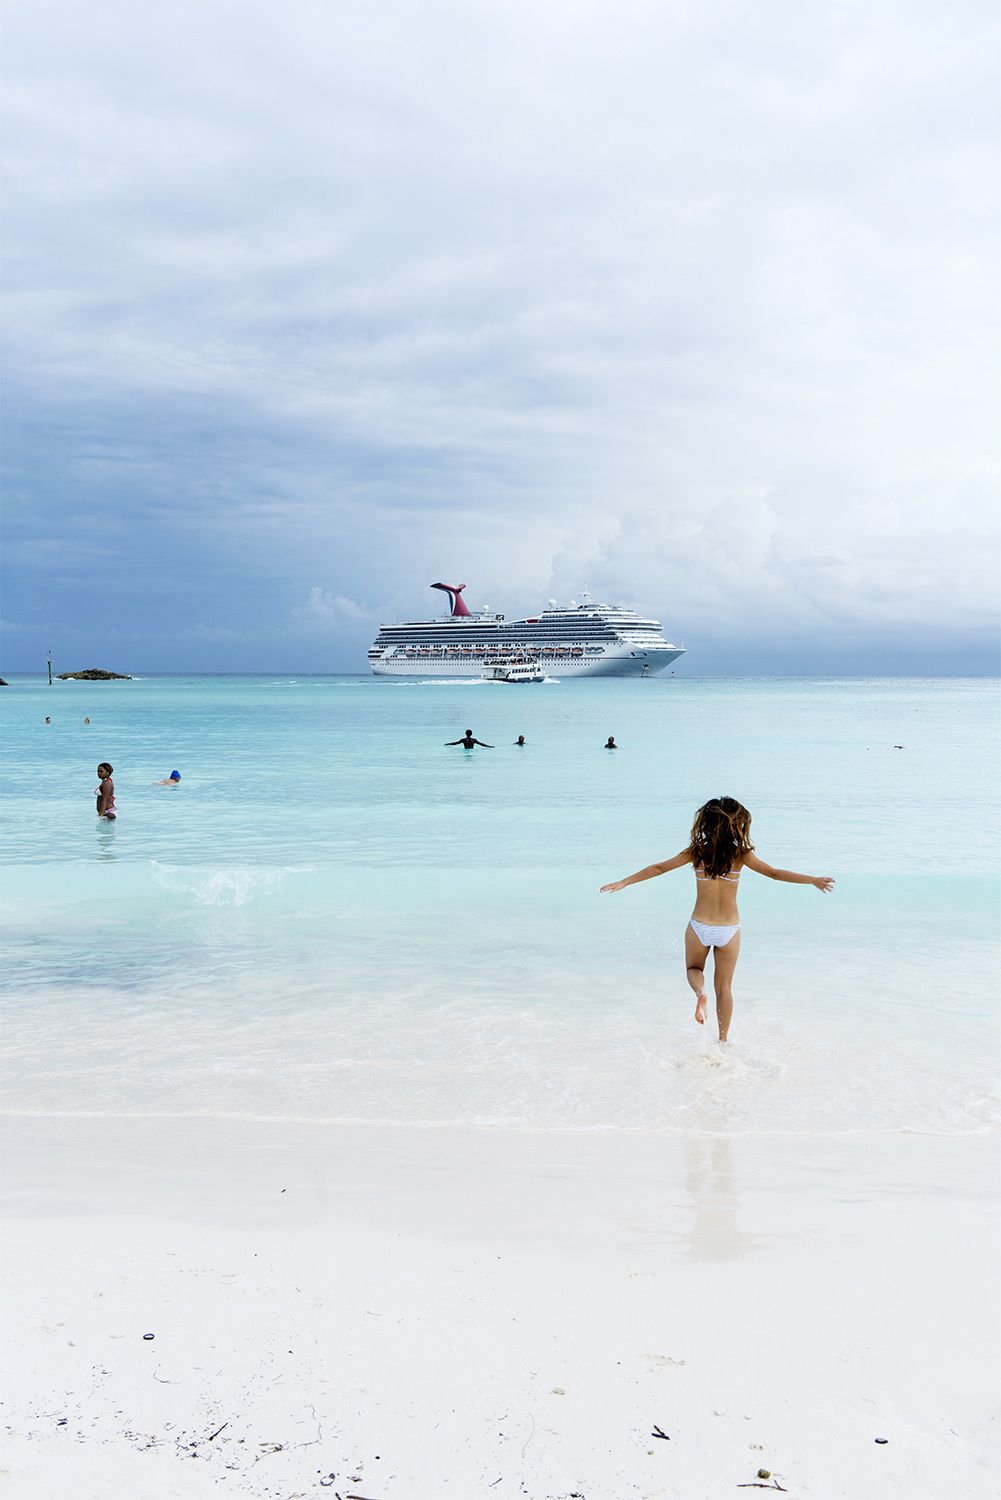 20+ Does A Carnival Glory Exist  Gif